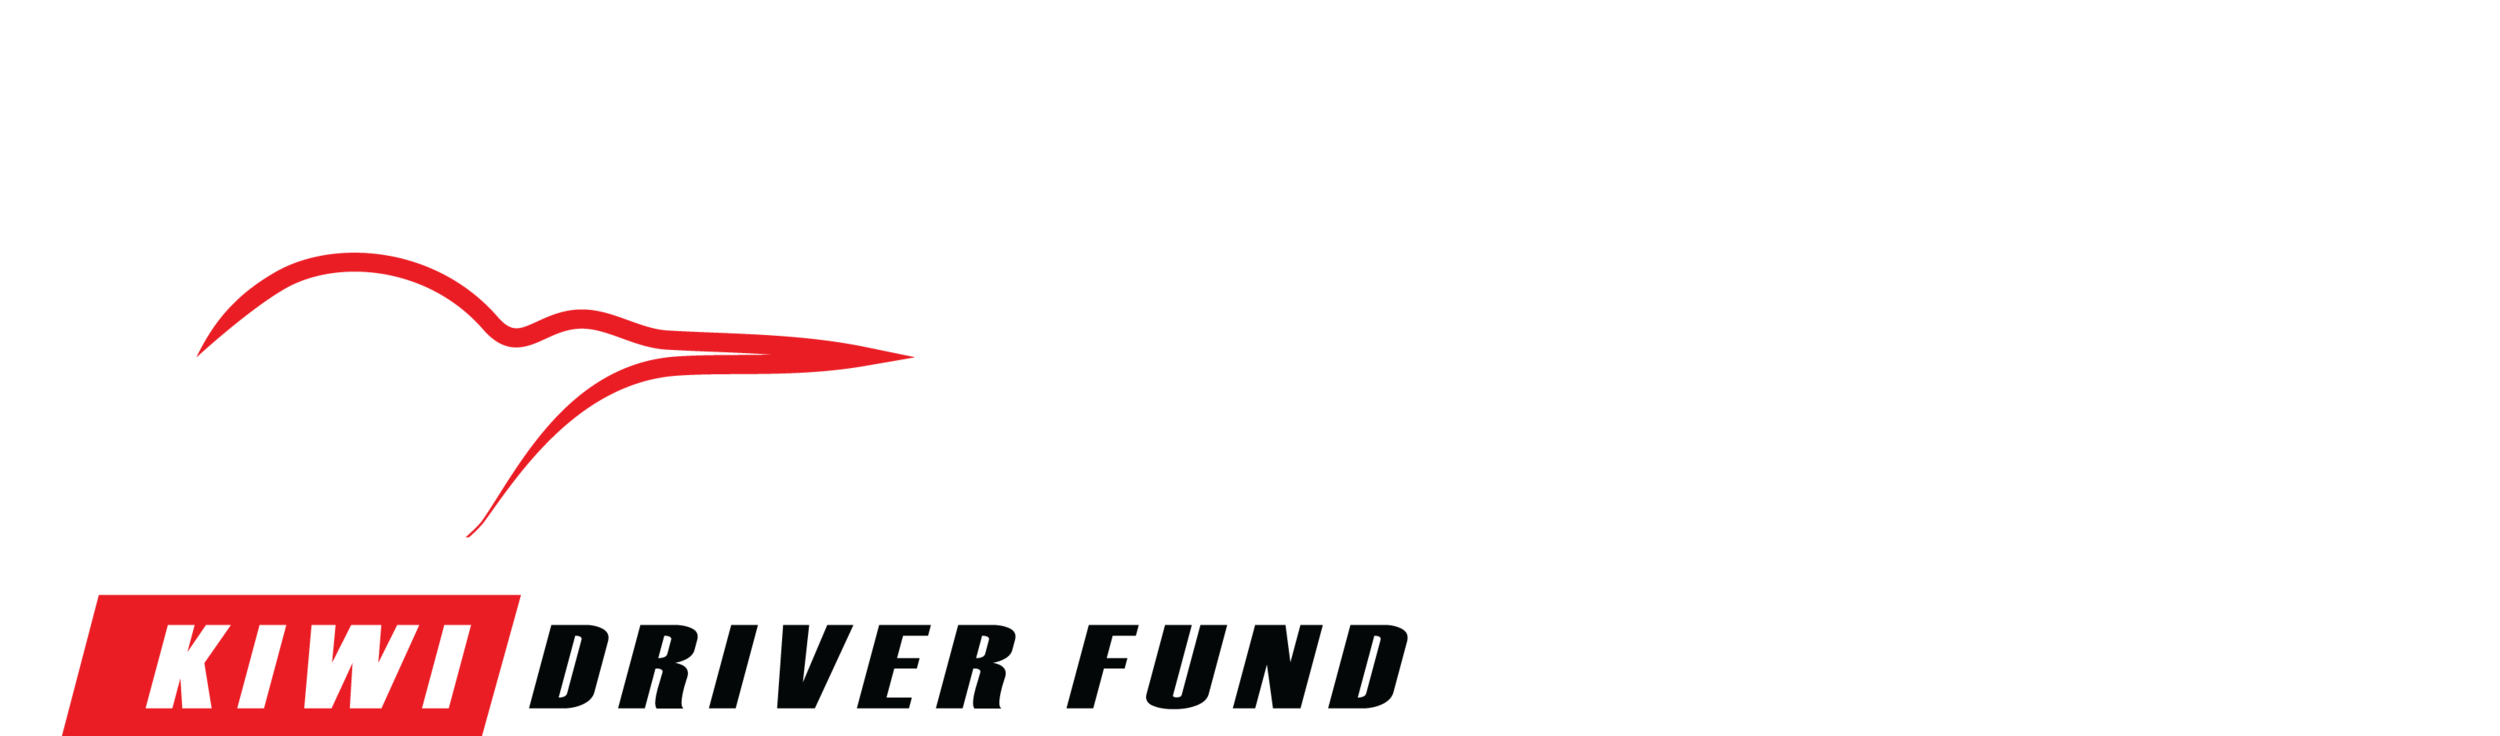 Kiwi Driver Fund - White and Red on Black Vector.png